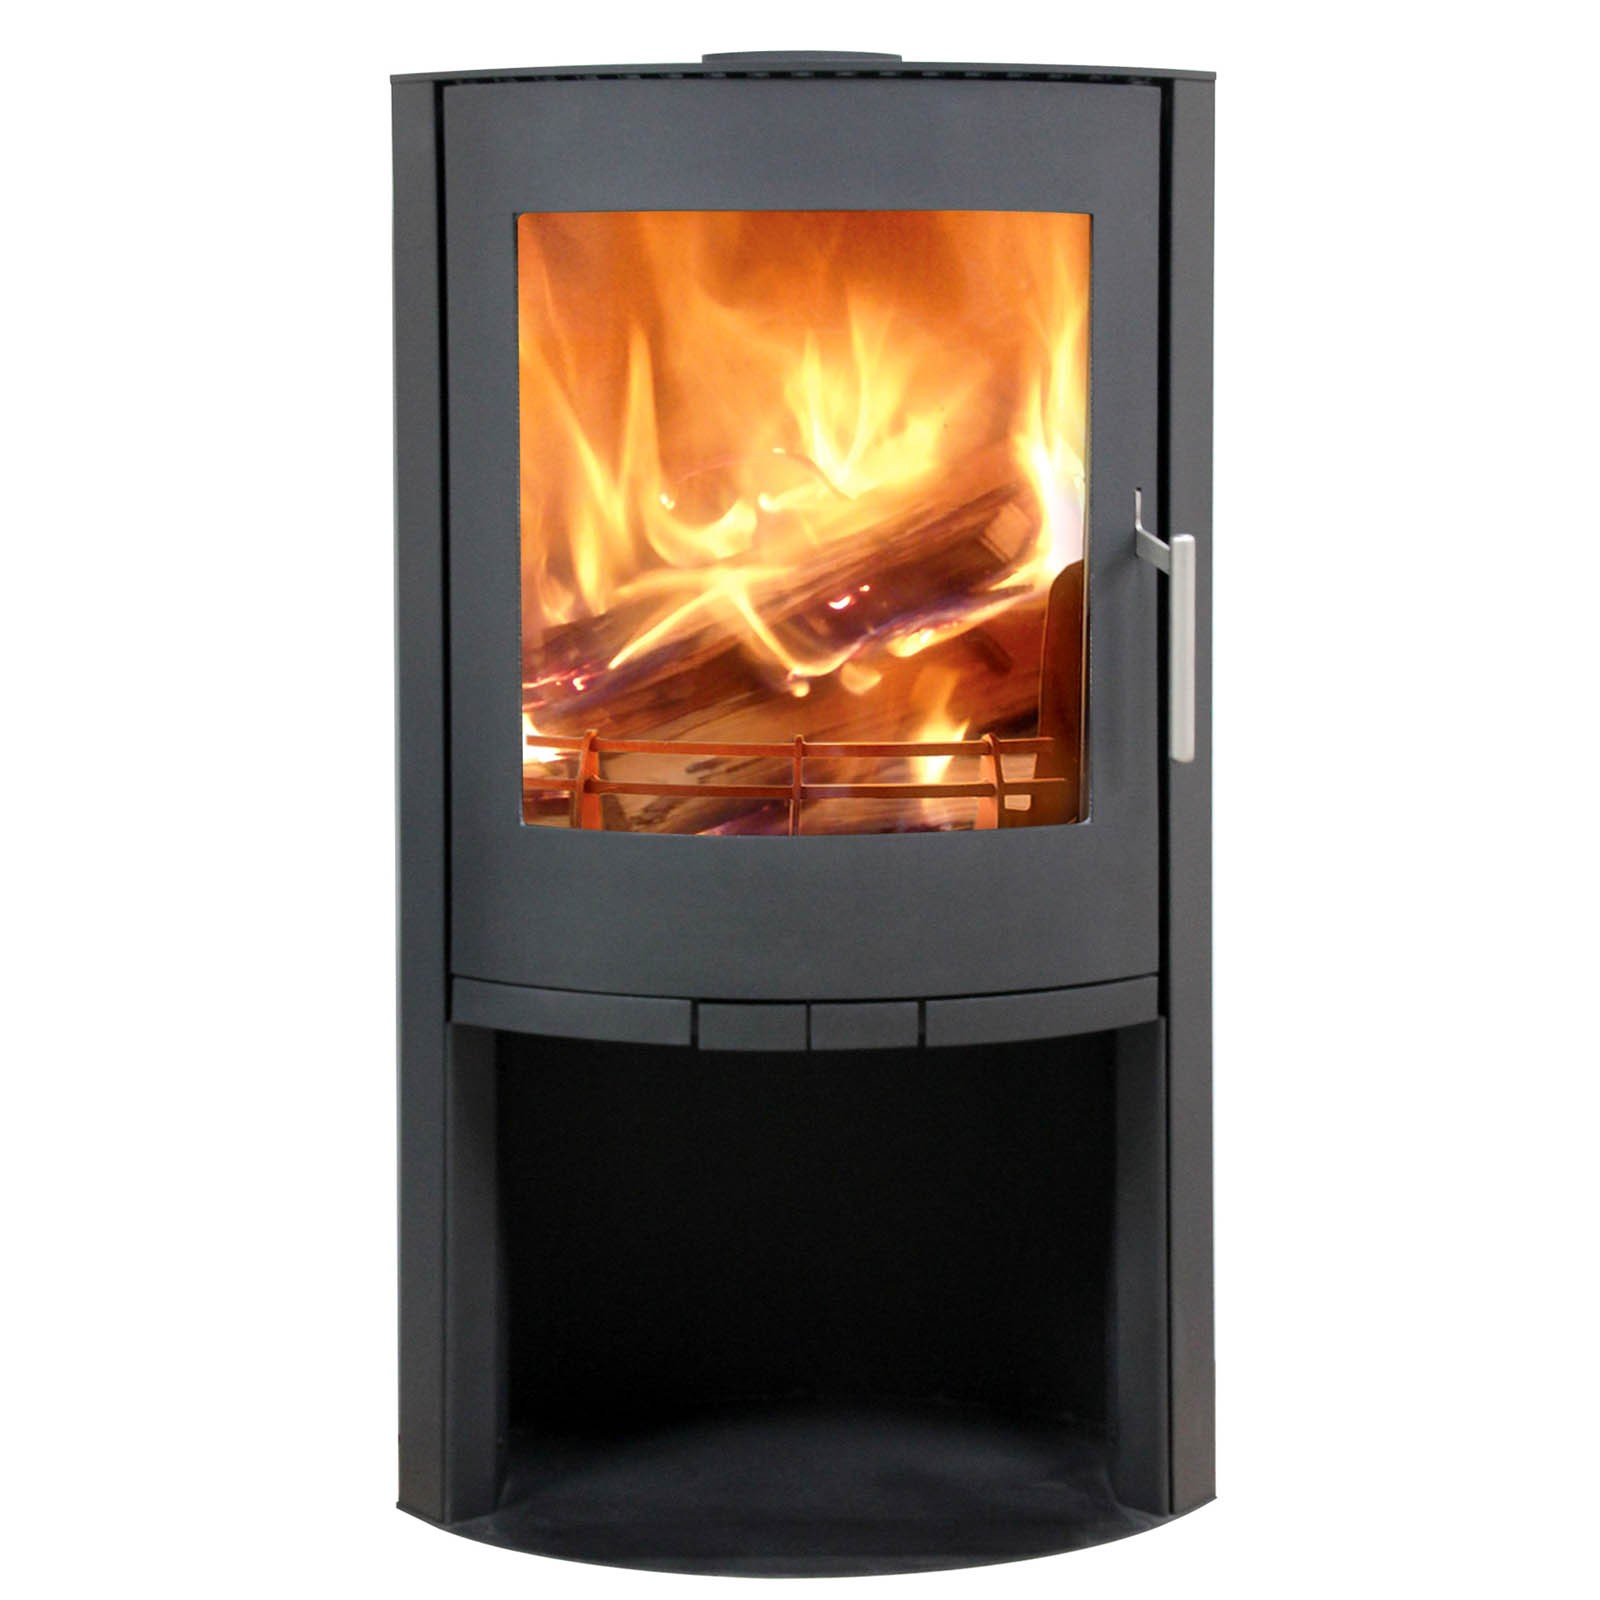 8KW Flair 8 Woodburning Stove with Log Store